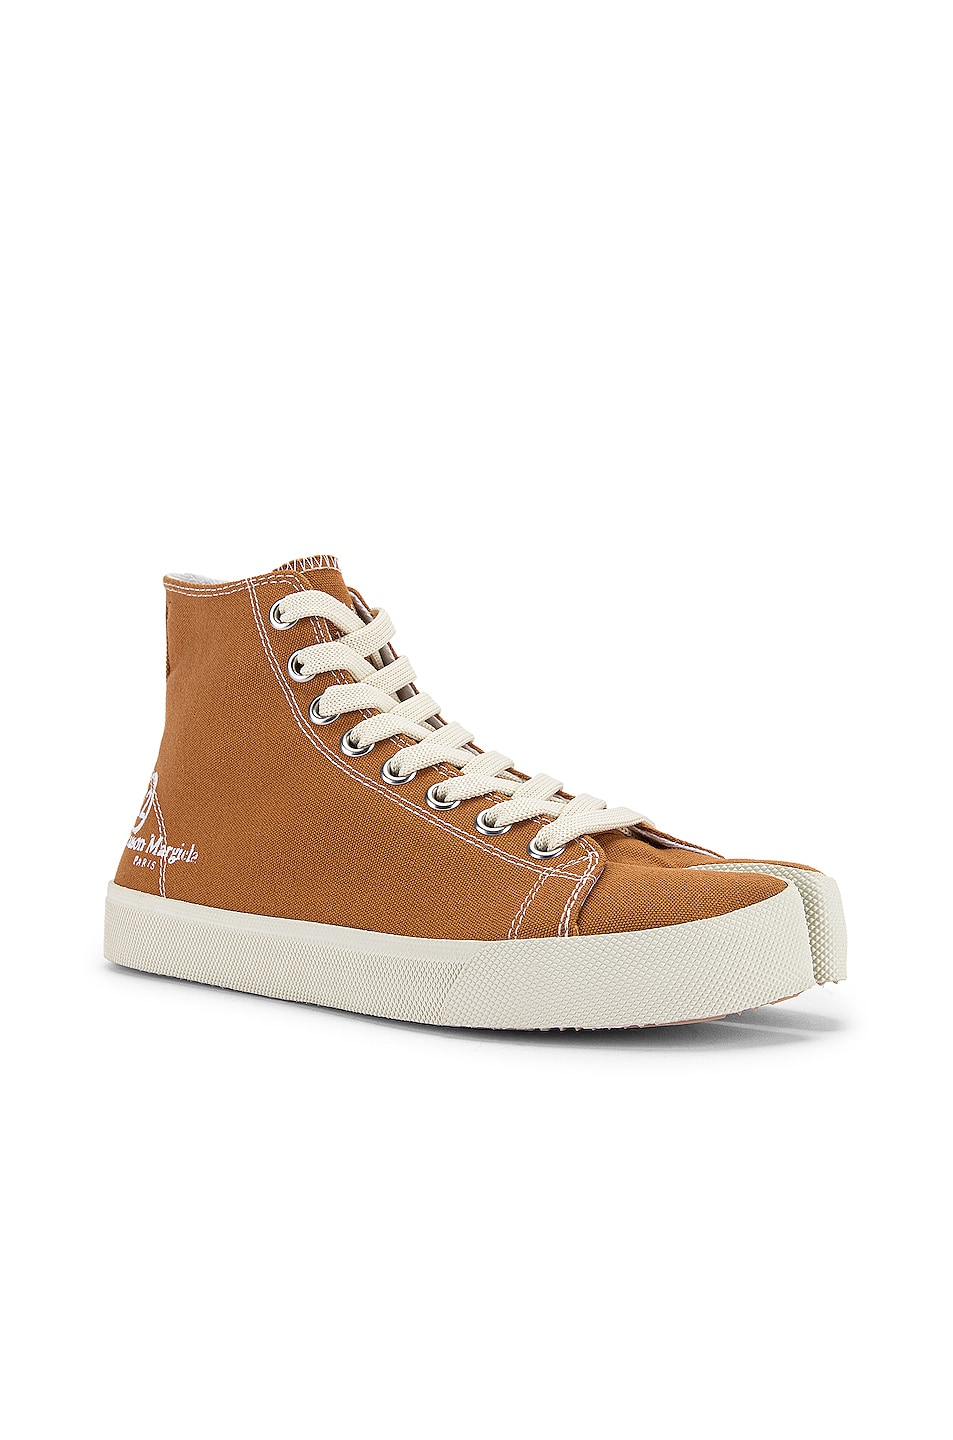 Image 3 of Maison Margiela Tabi High Top Canvas Sneakers in Nude